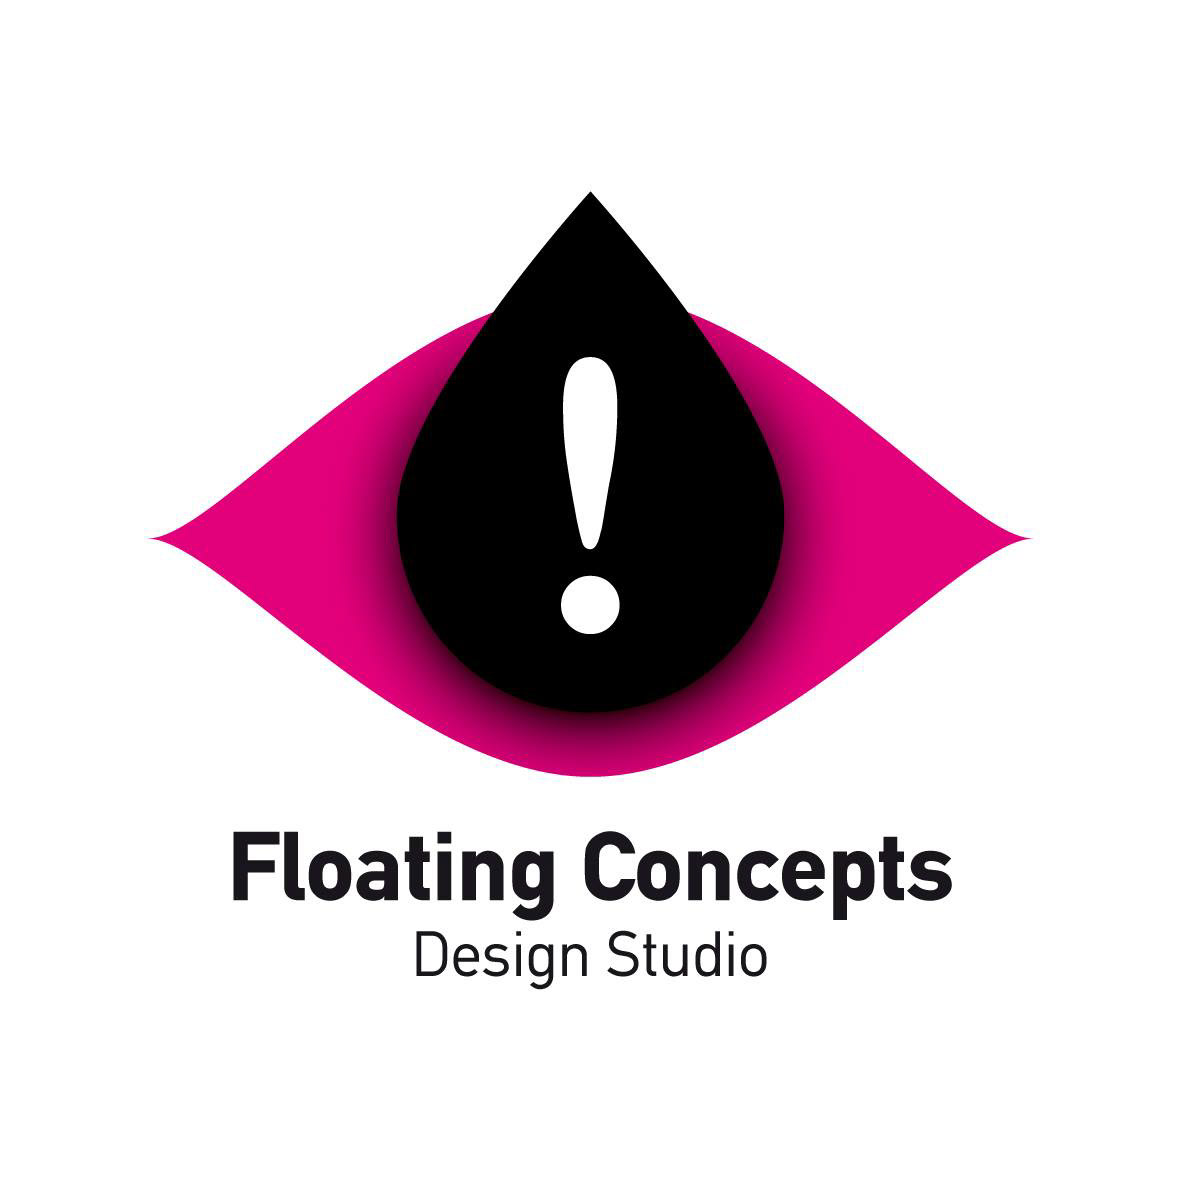 Floating Concepts - Vicky Theodoreli